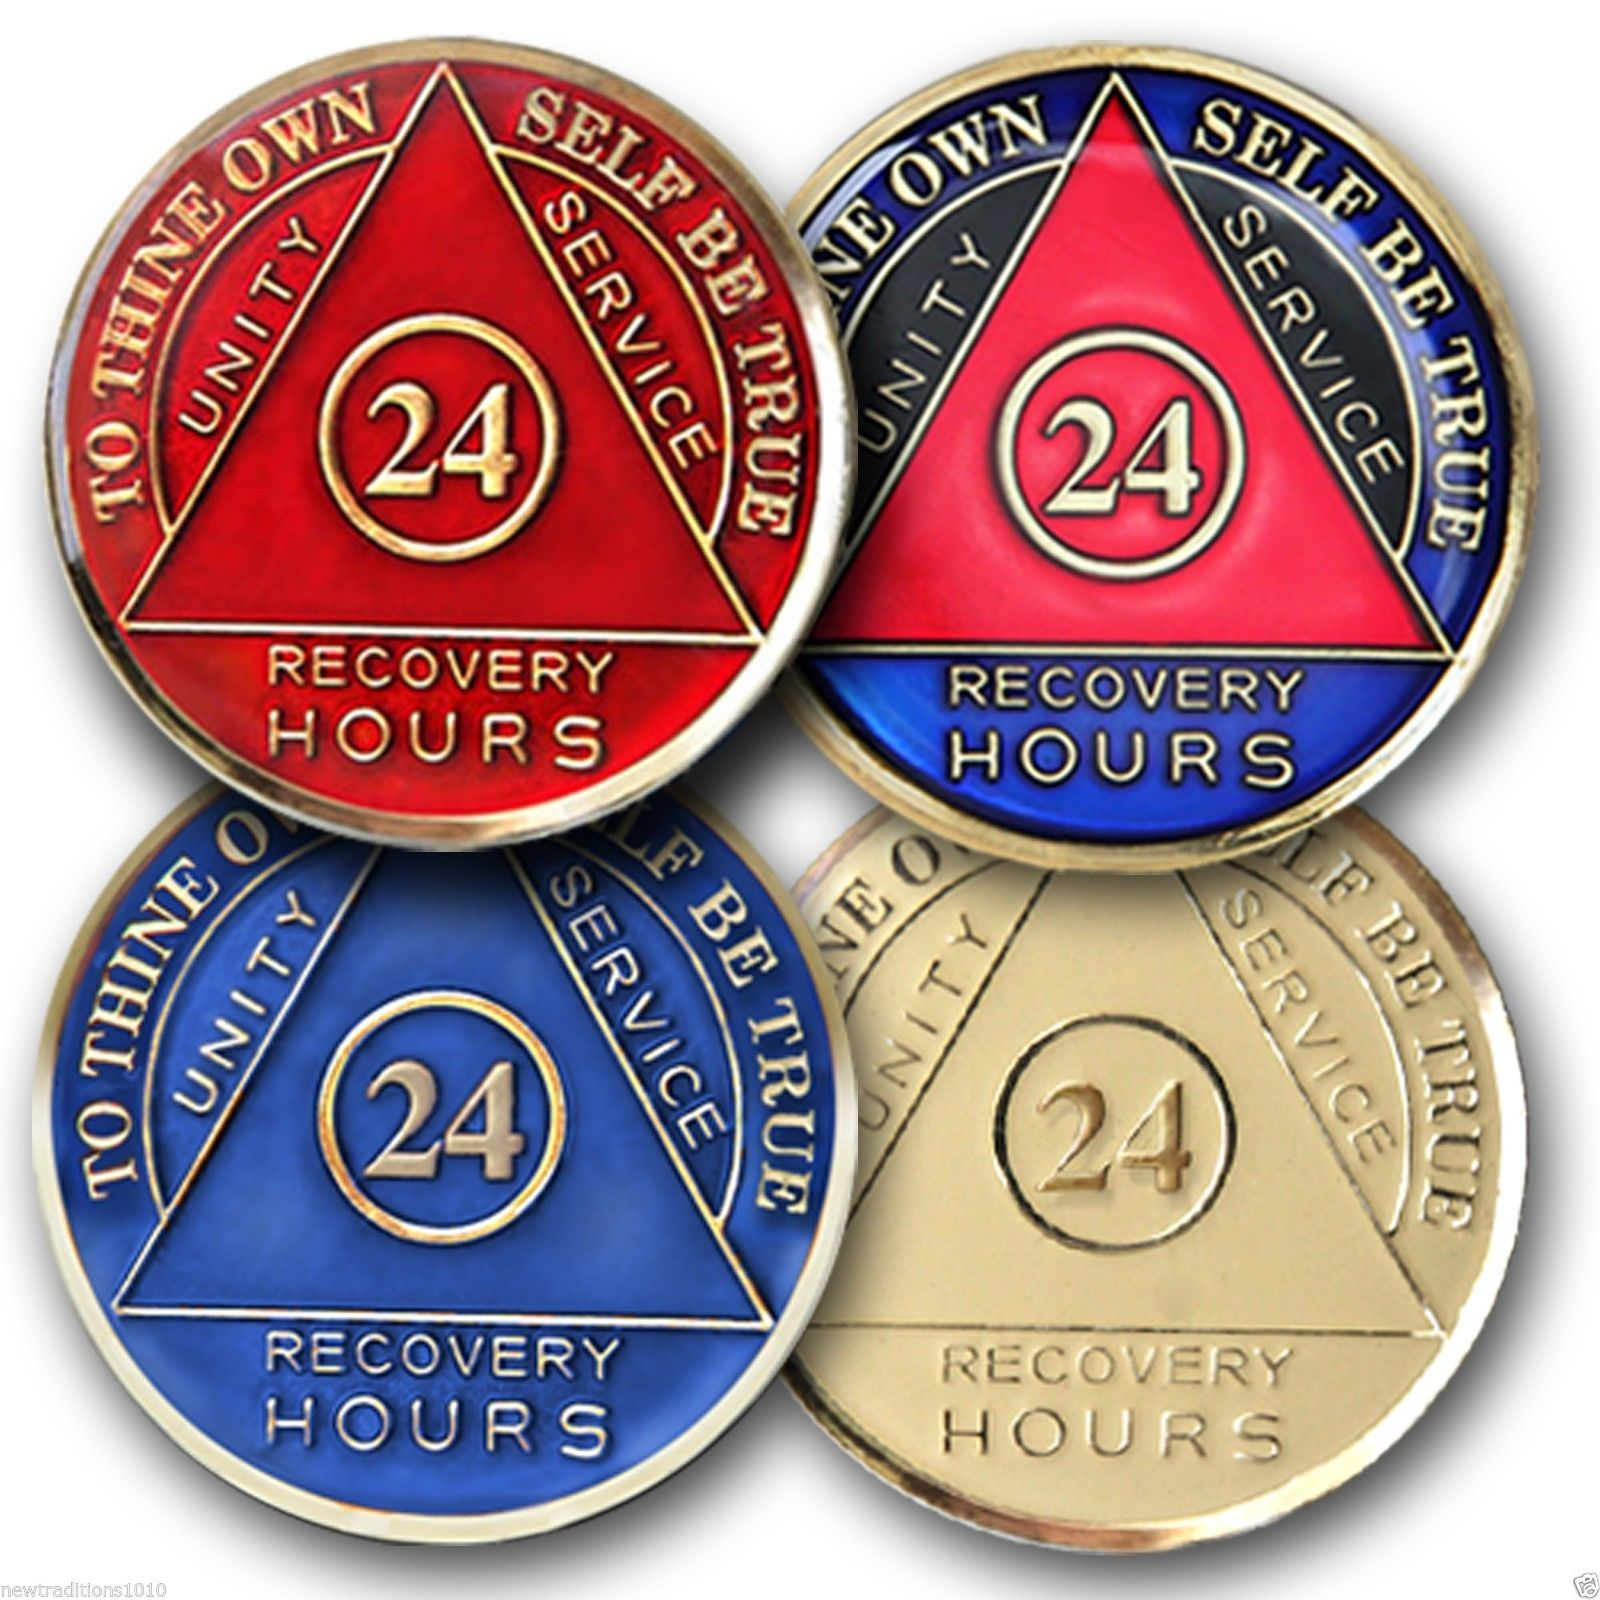 24 hour AA Sobriety Recovery Coin/Medallion  4 Colors Available!  Choose from:  Red, Ivory, Blue, Tri-color  The Serenity Prayer is on the reverse side with raised gold lettering.